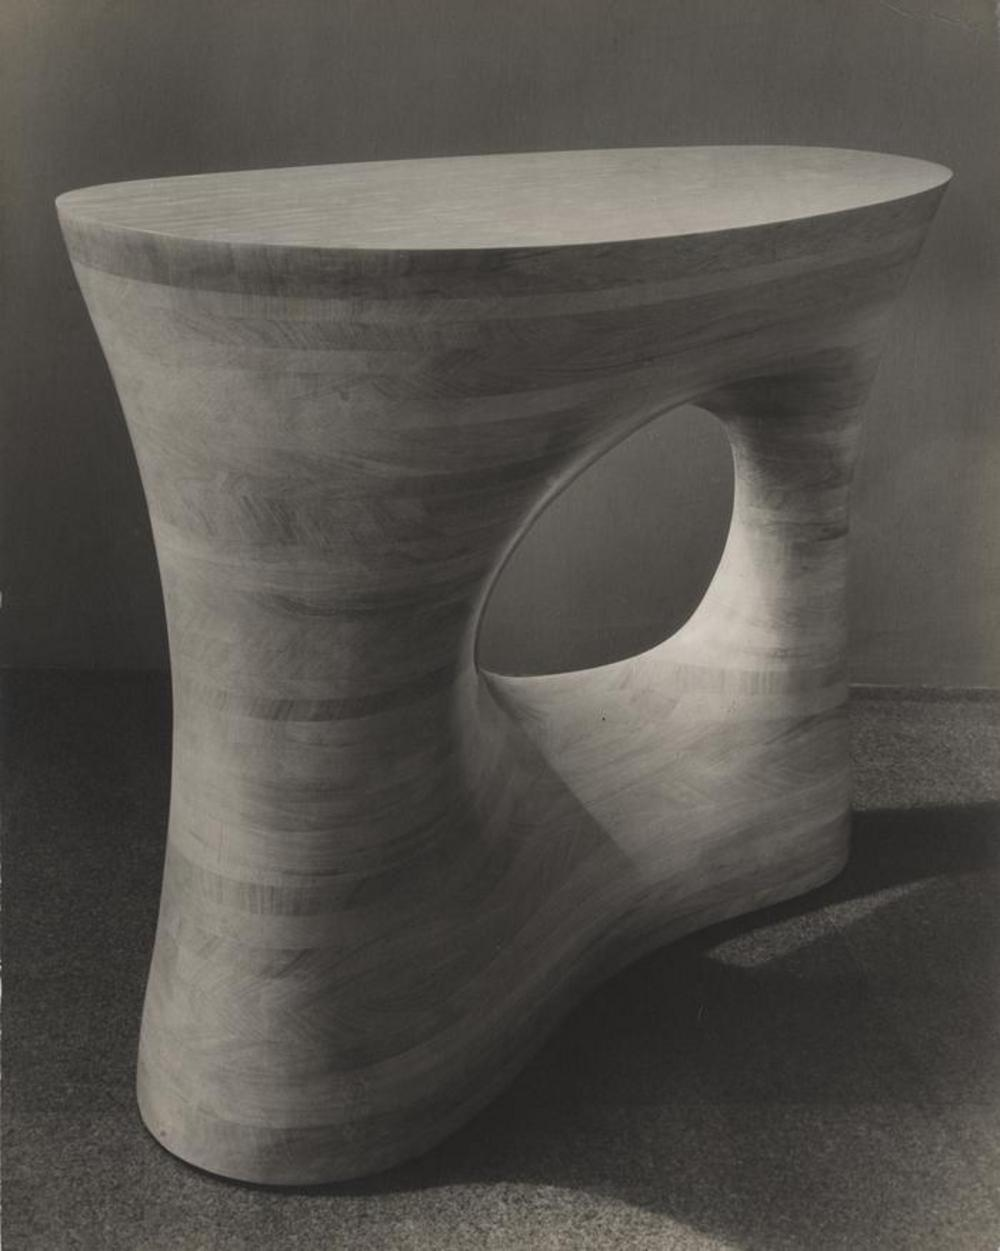 Table for Philip Goodwin, image 3